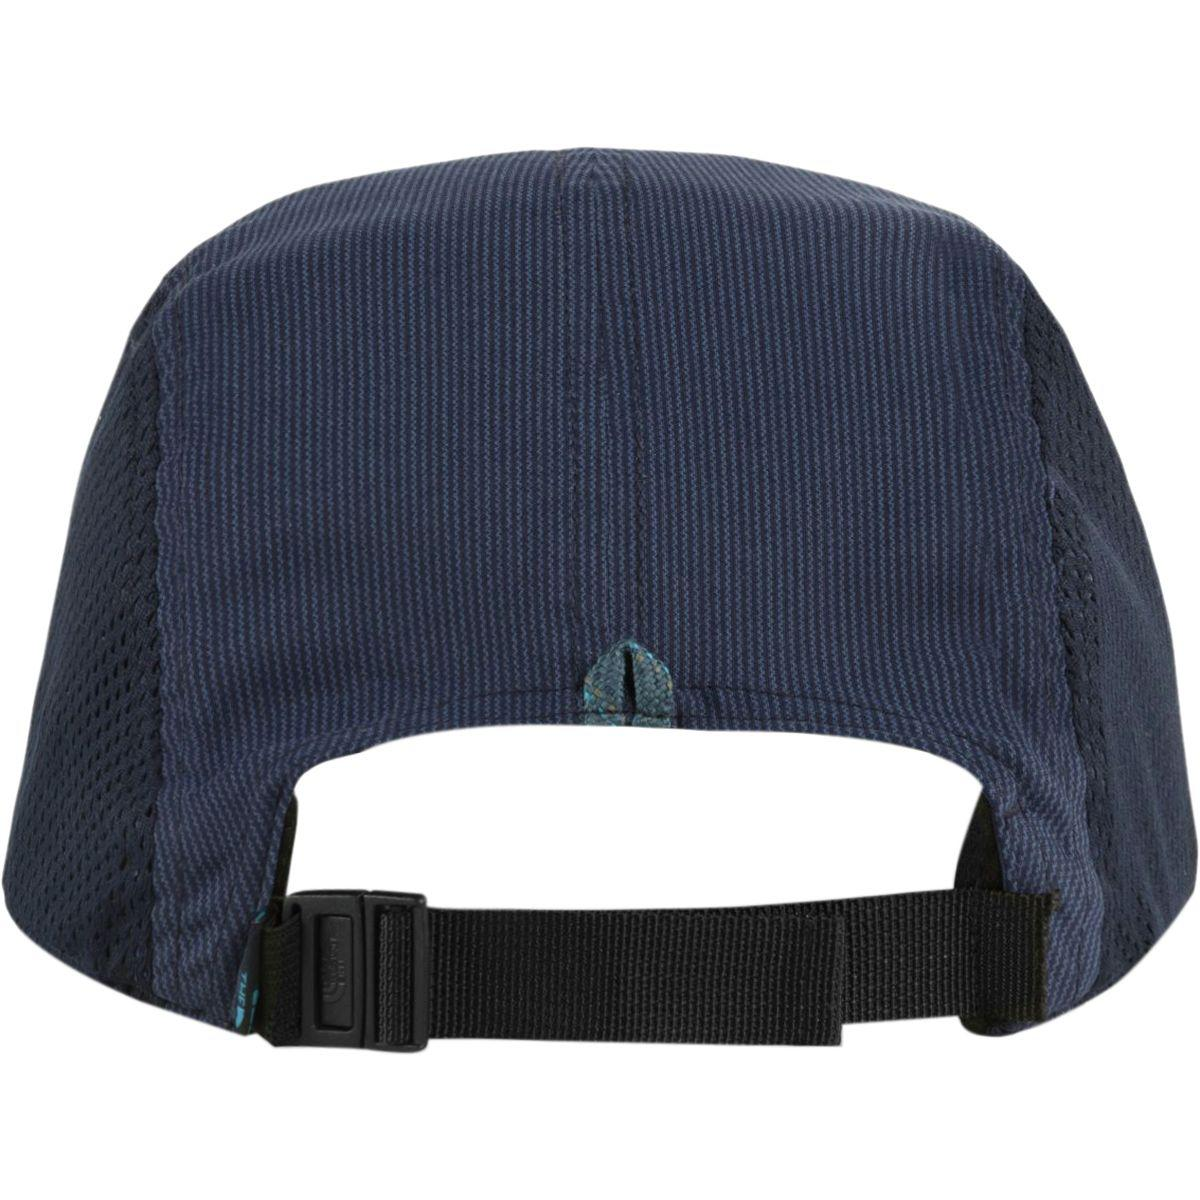 ef14fe56 The North Face Tech Five Panel Sporty Hat in Blue for Men - Lyst